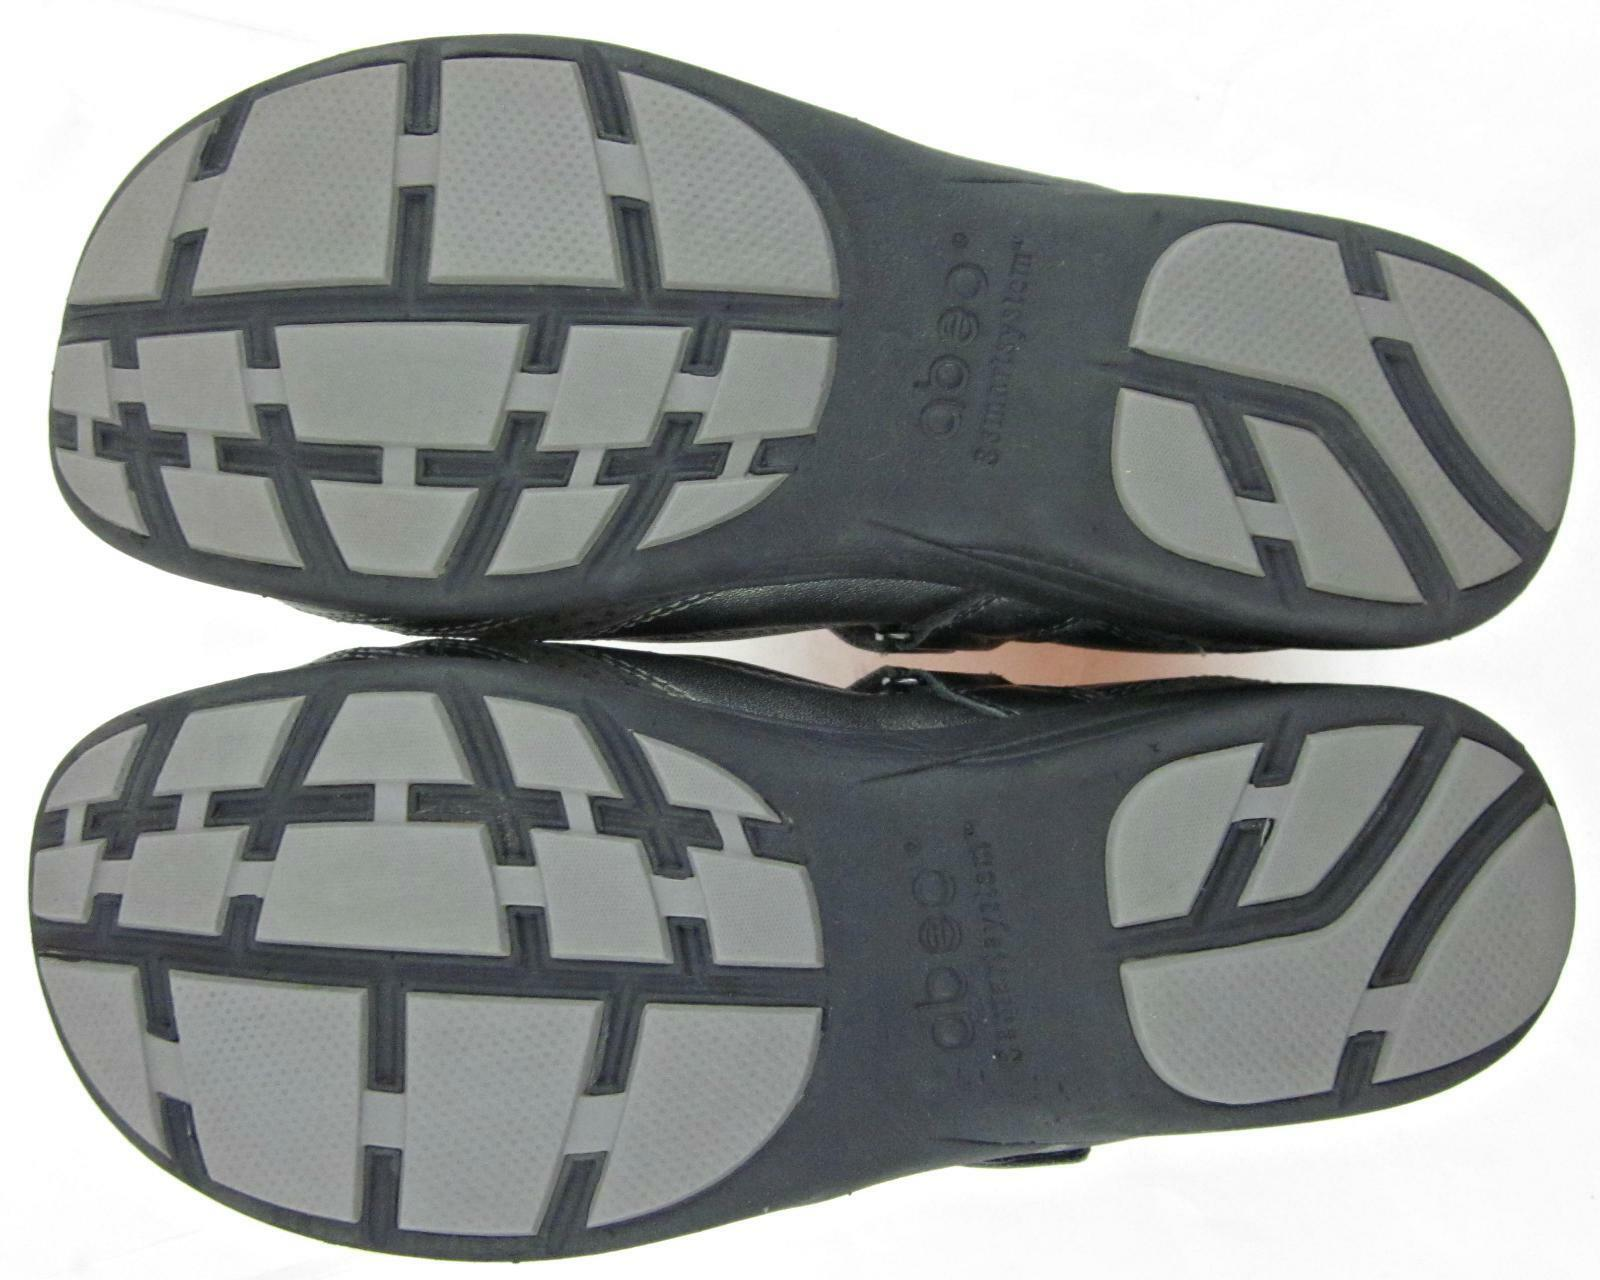 ABEO 3590 SmartSystem Mary Jane shoes Pewter Pewter Pewter Leather US 8 Neutral Footbed 76a0b5